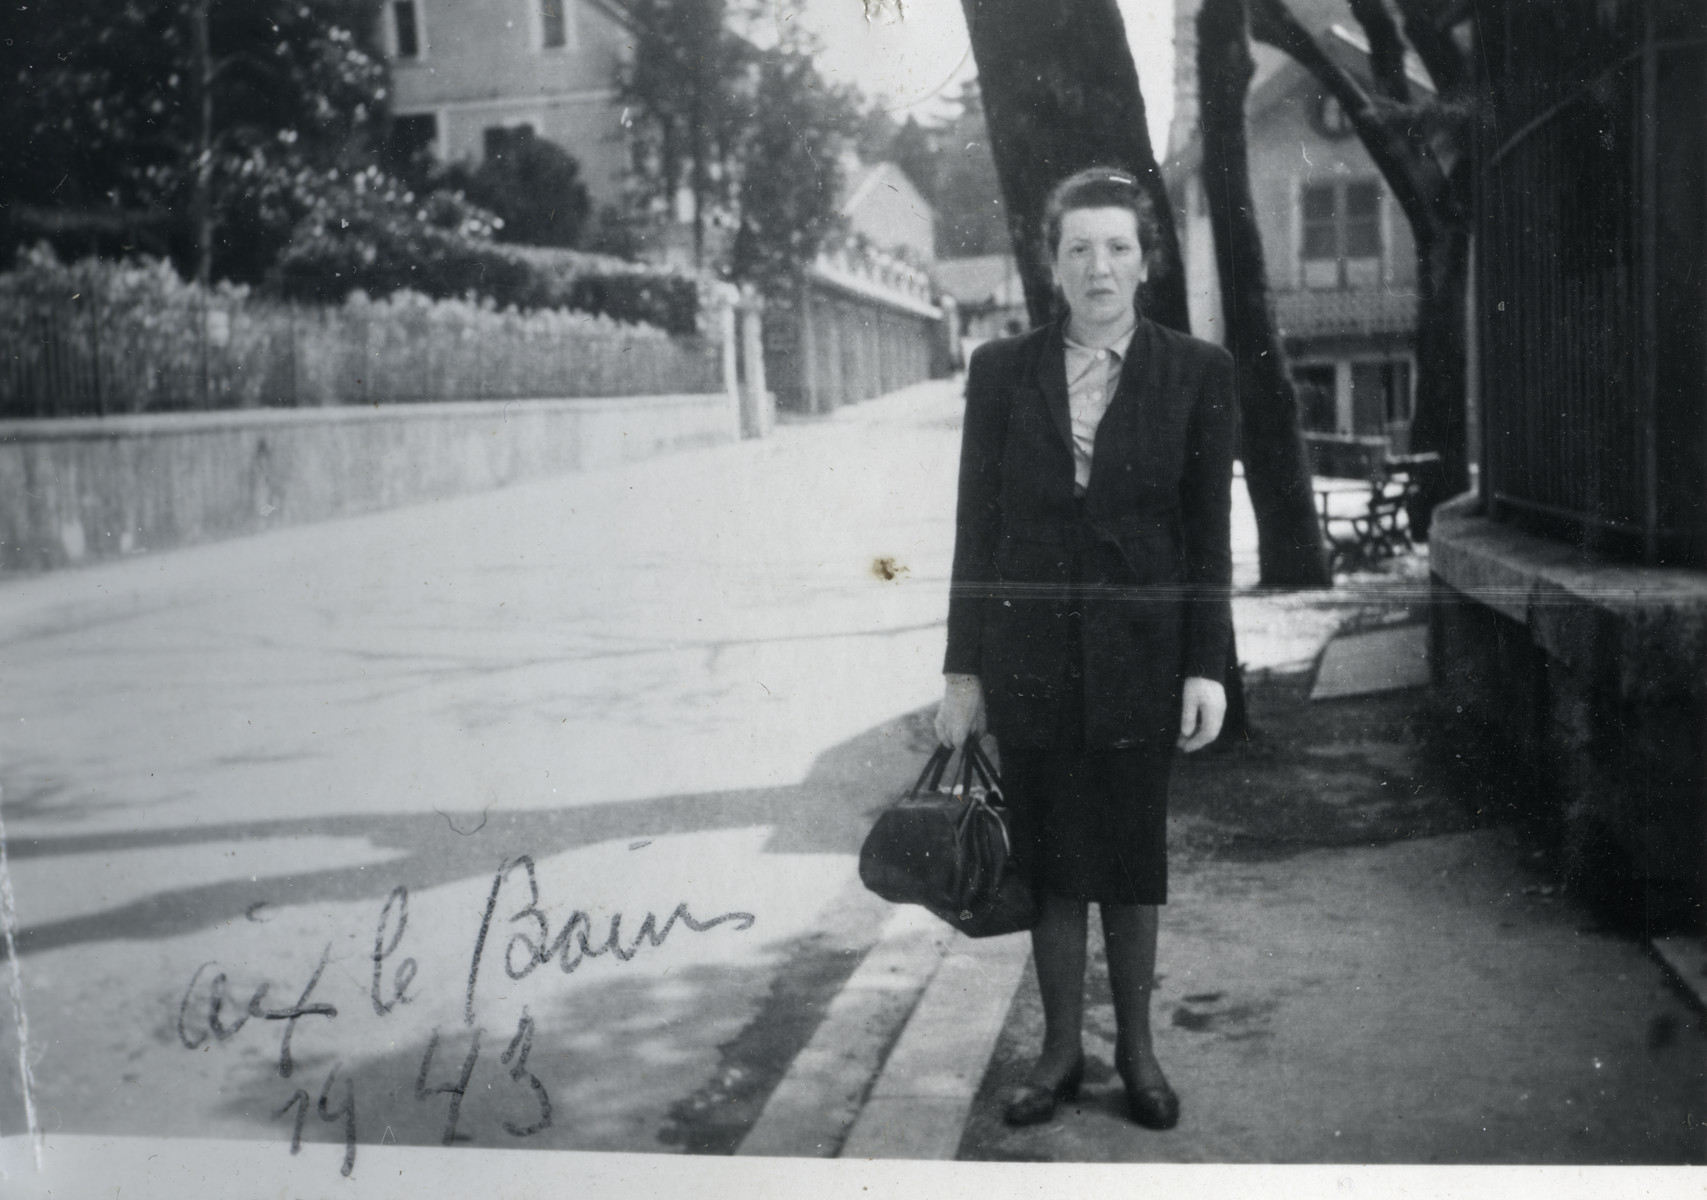 Camille Spira stands on a street in Aix-les-Bains.